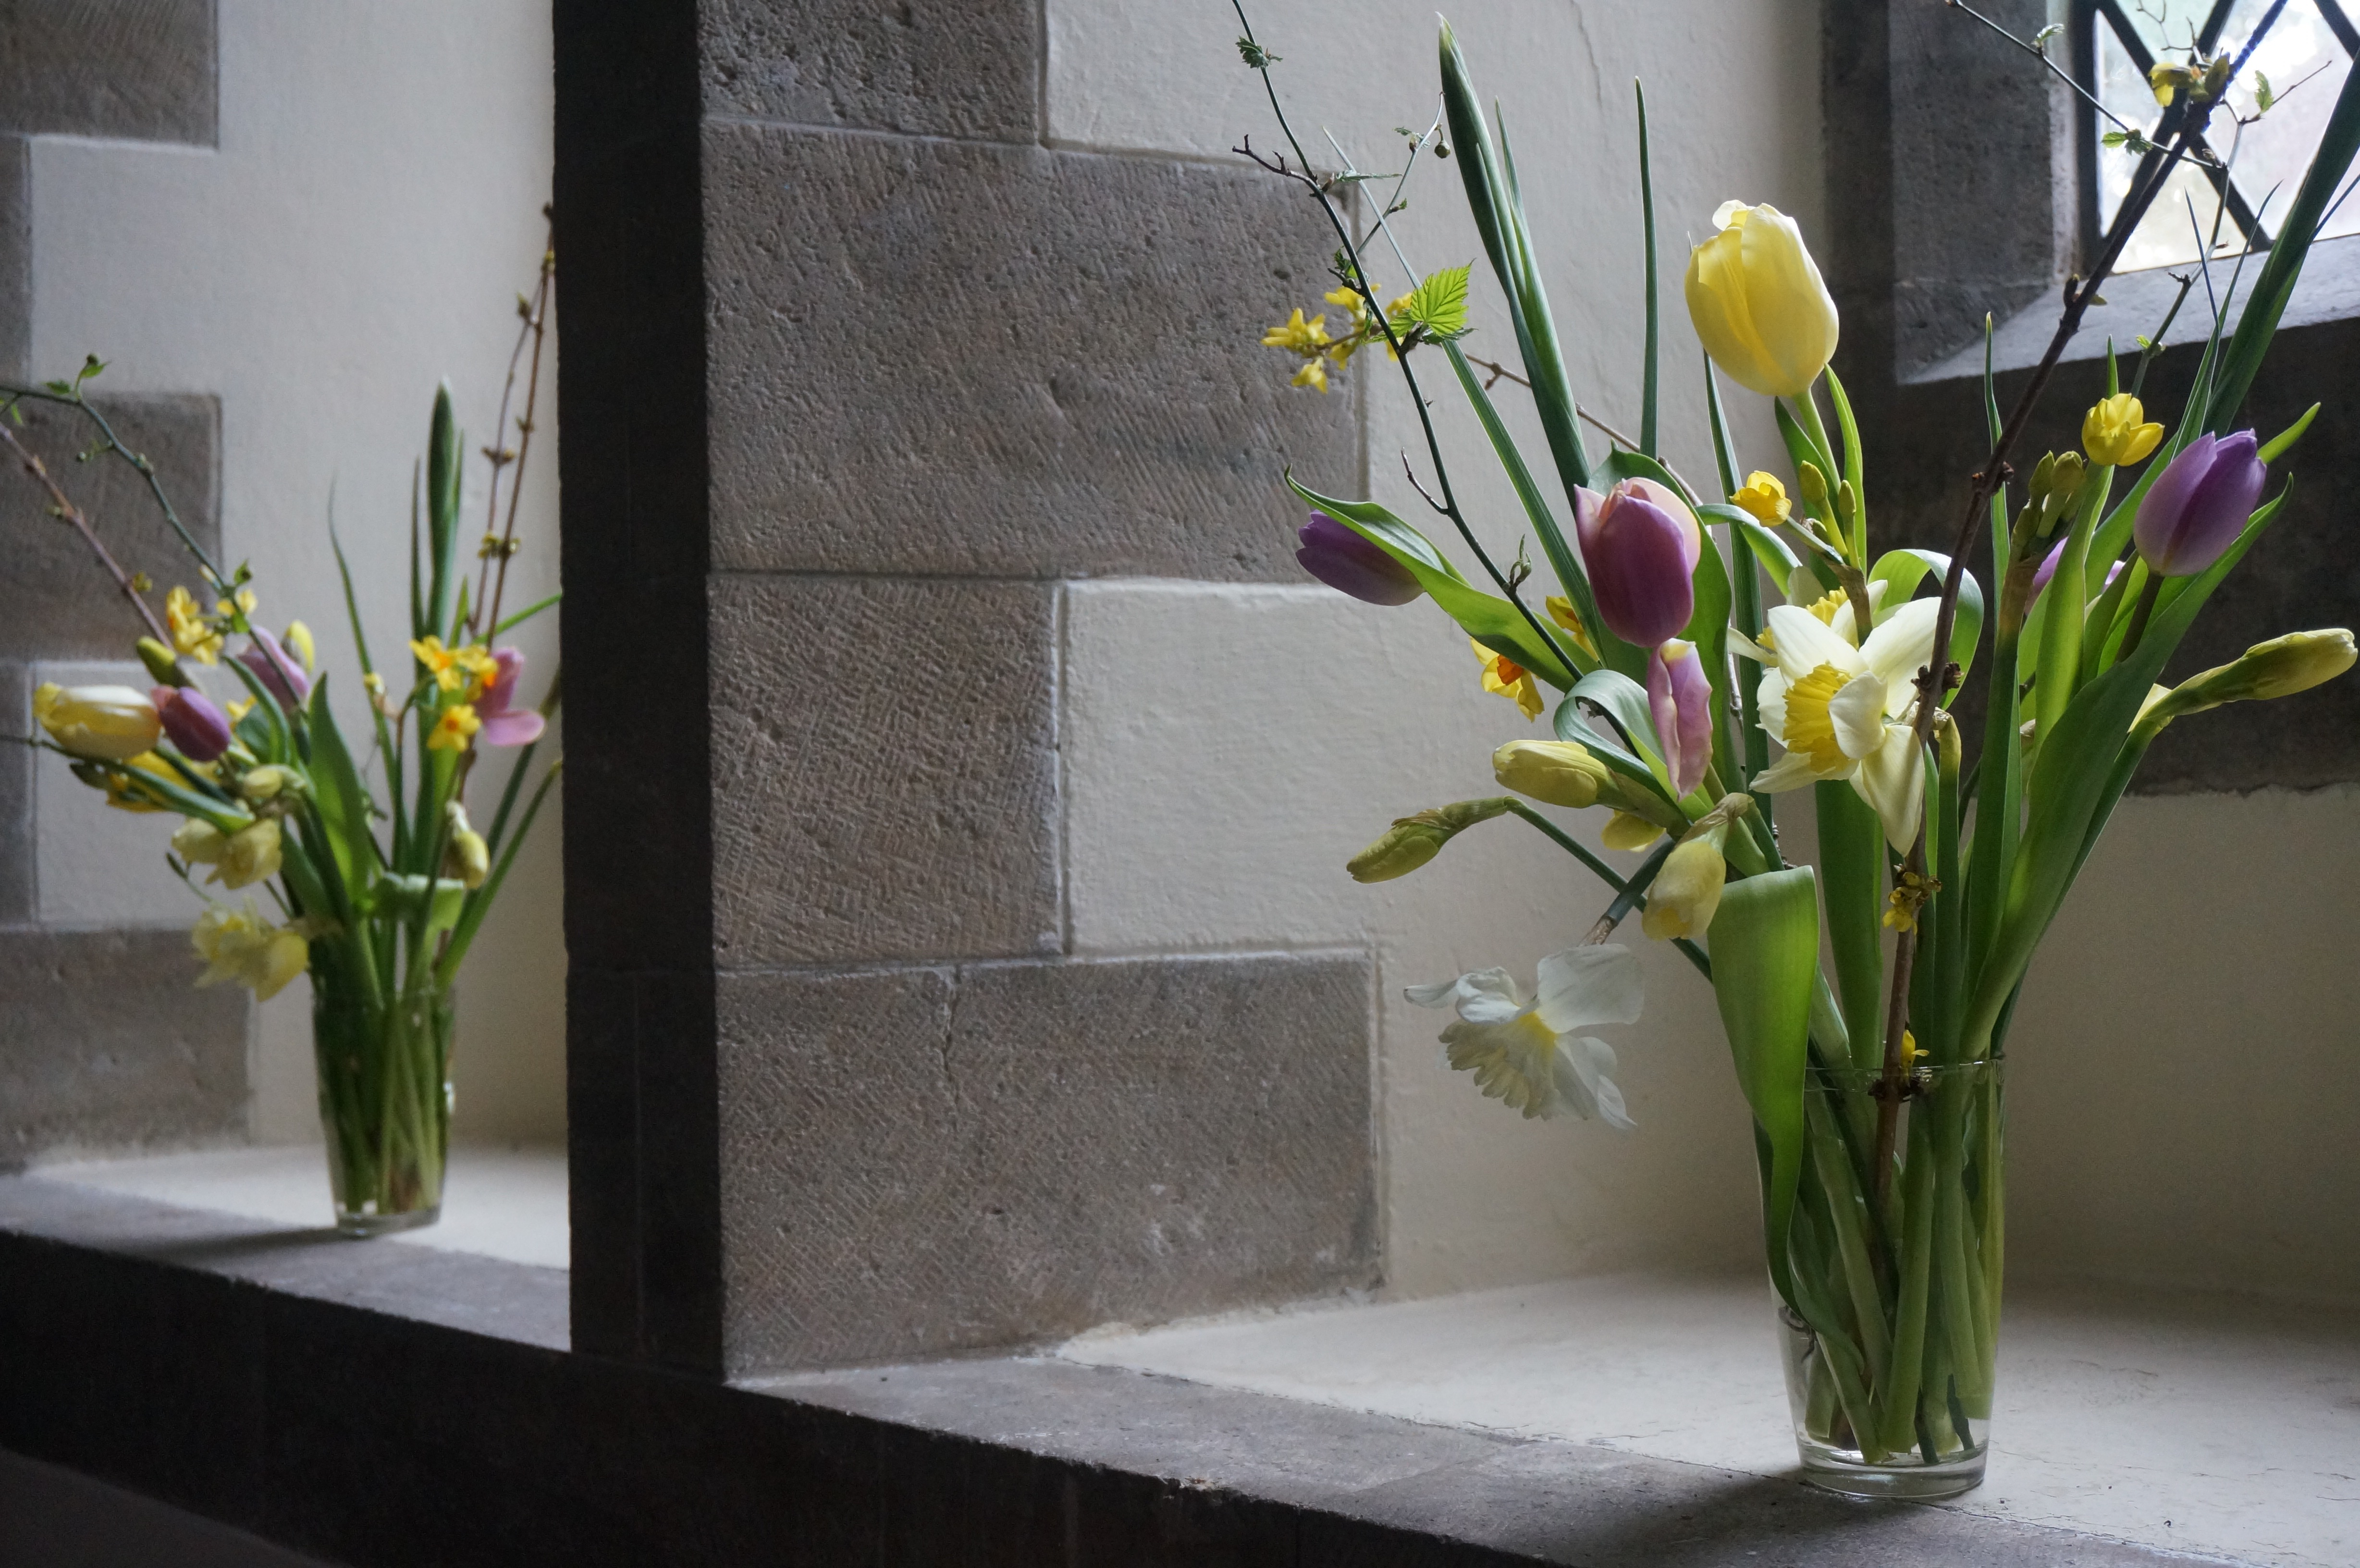 Normally a day for church decoration - things will be different this year - but the flowers still bloom this Spring!